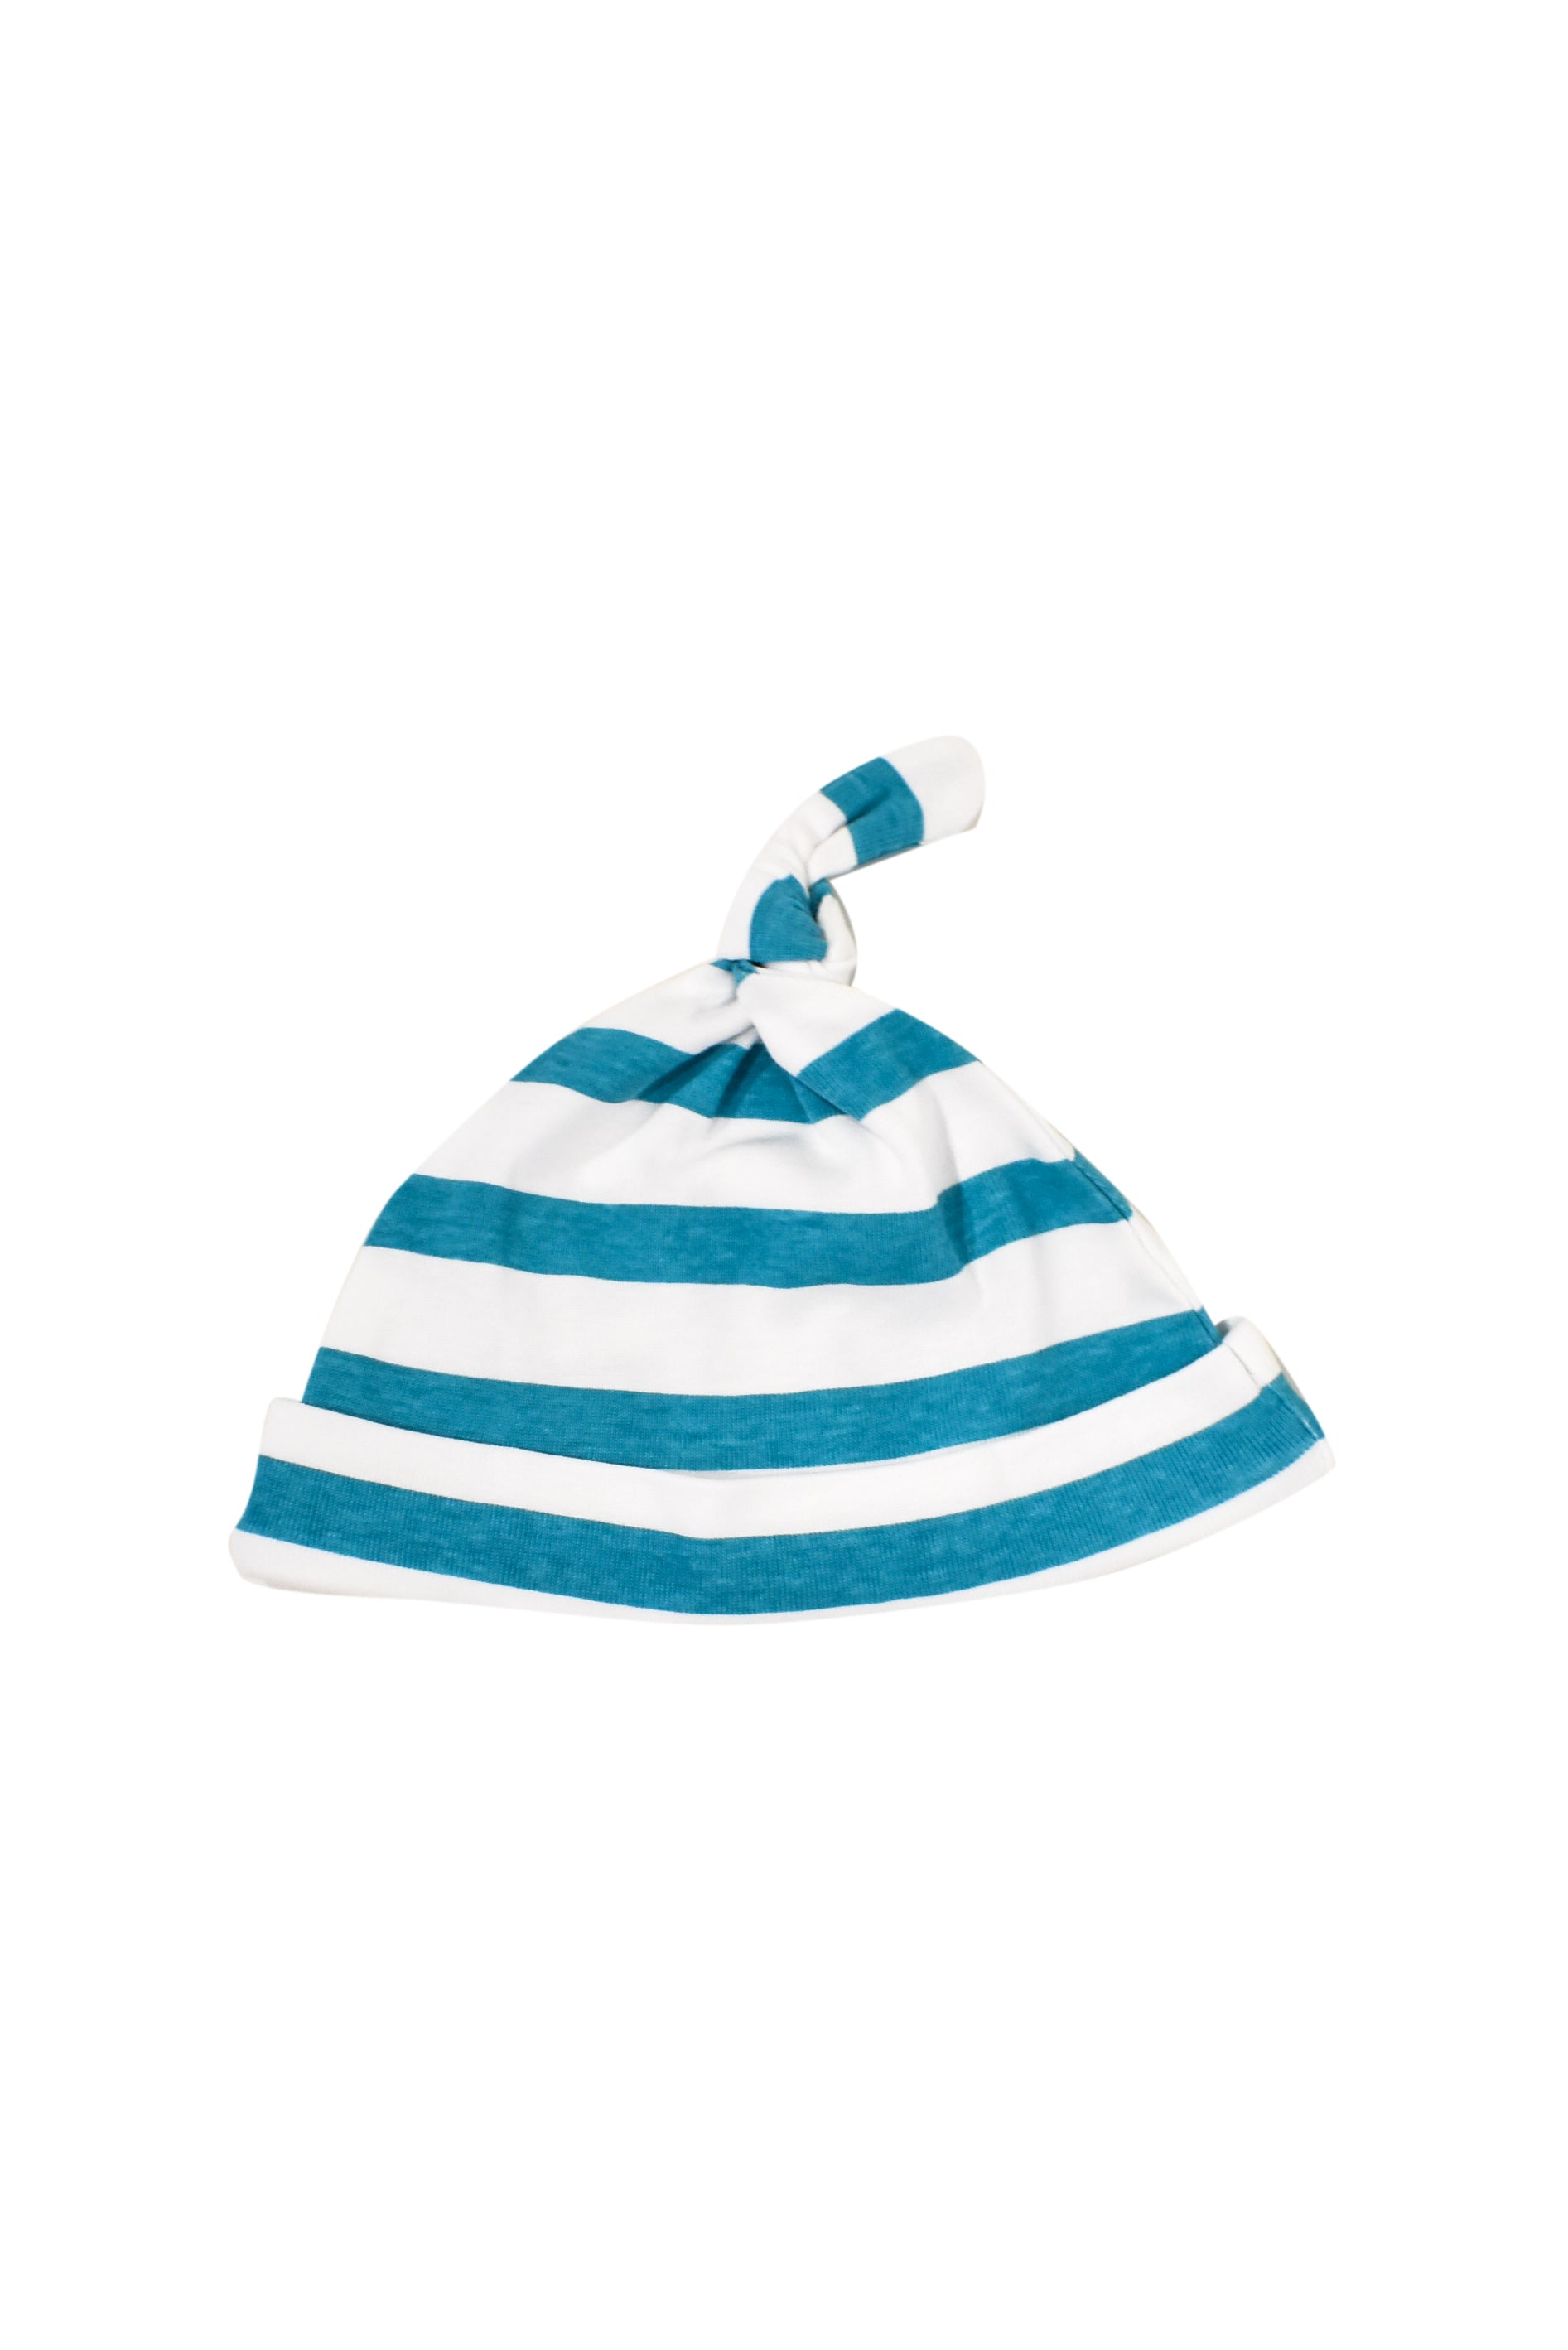 10018241 Pottery Barn Baby~Bib, Beanie and Blanket Set O/S at Retykle